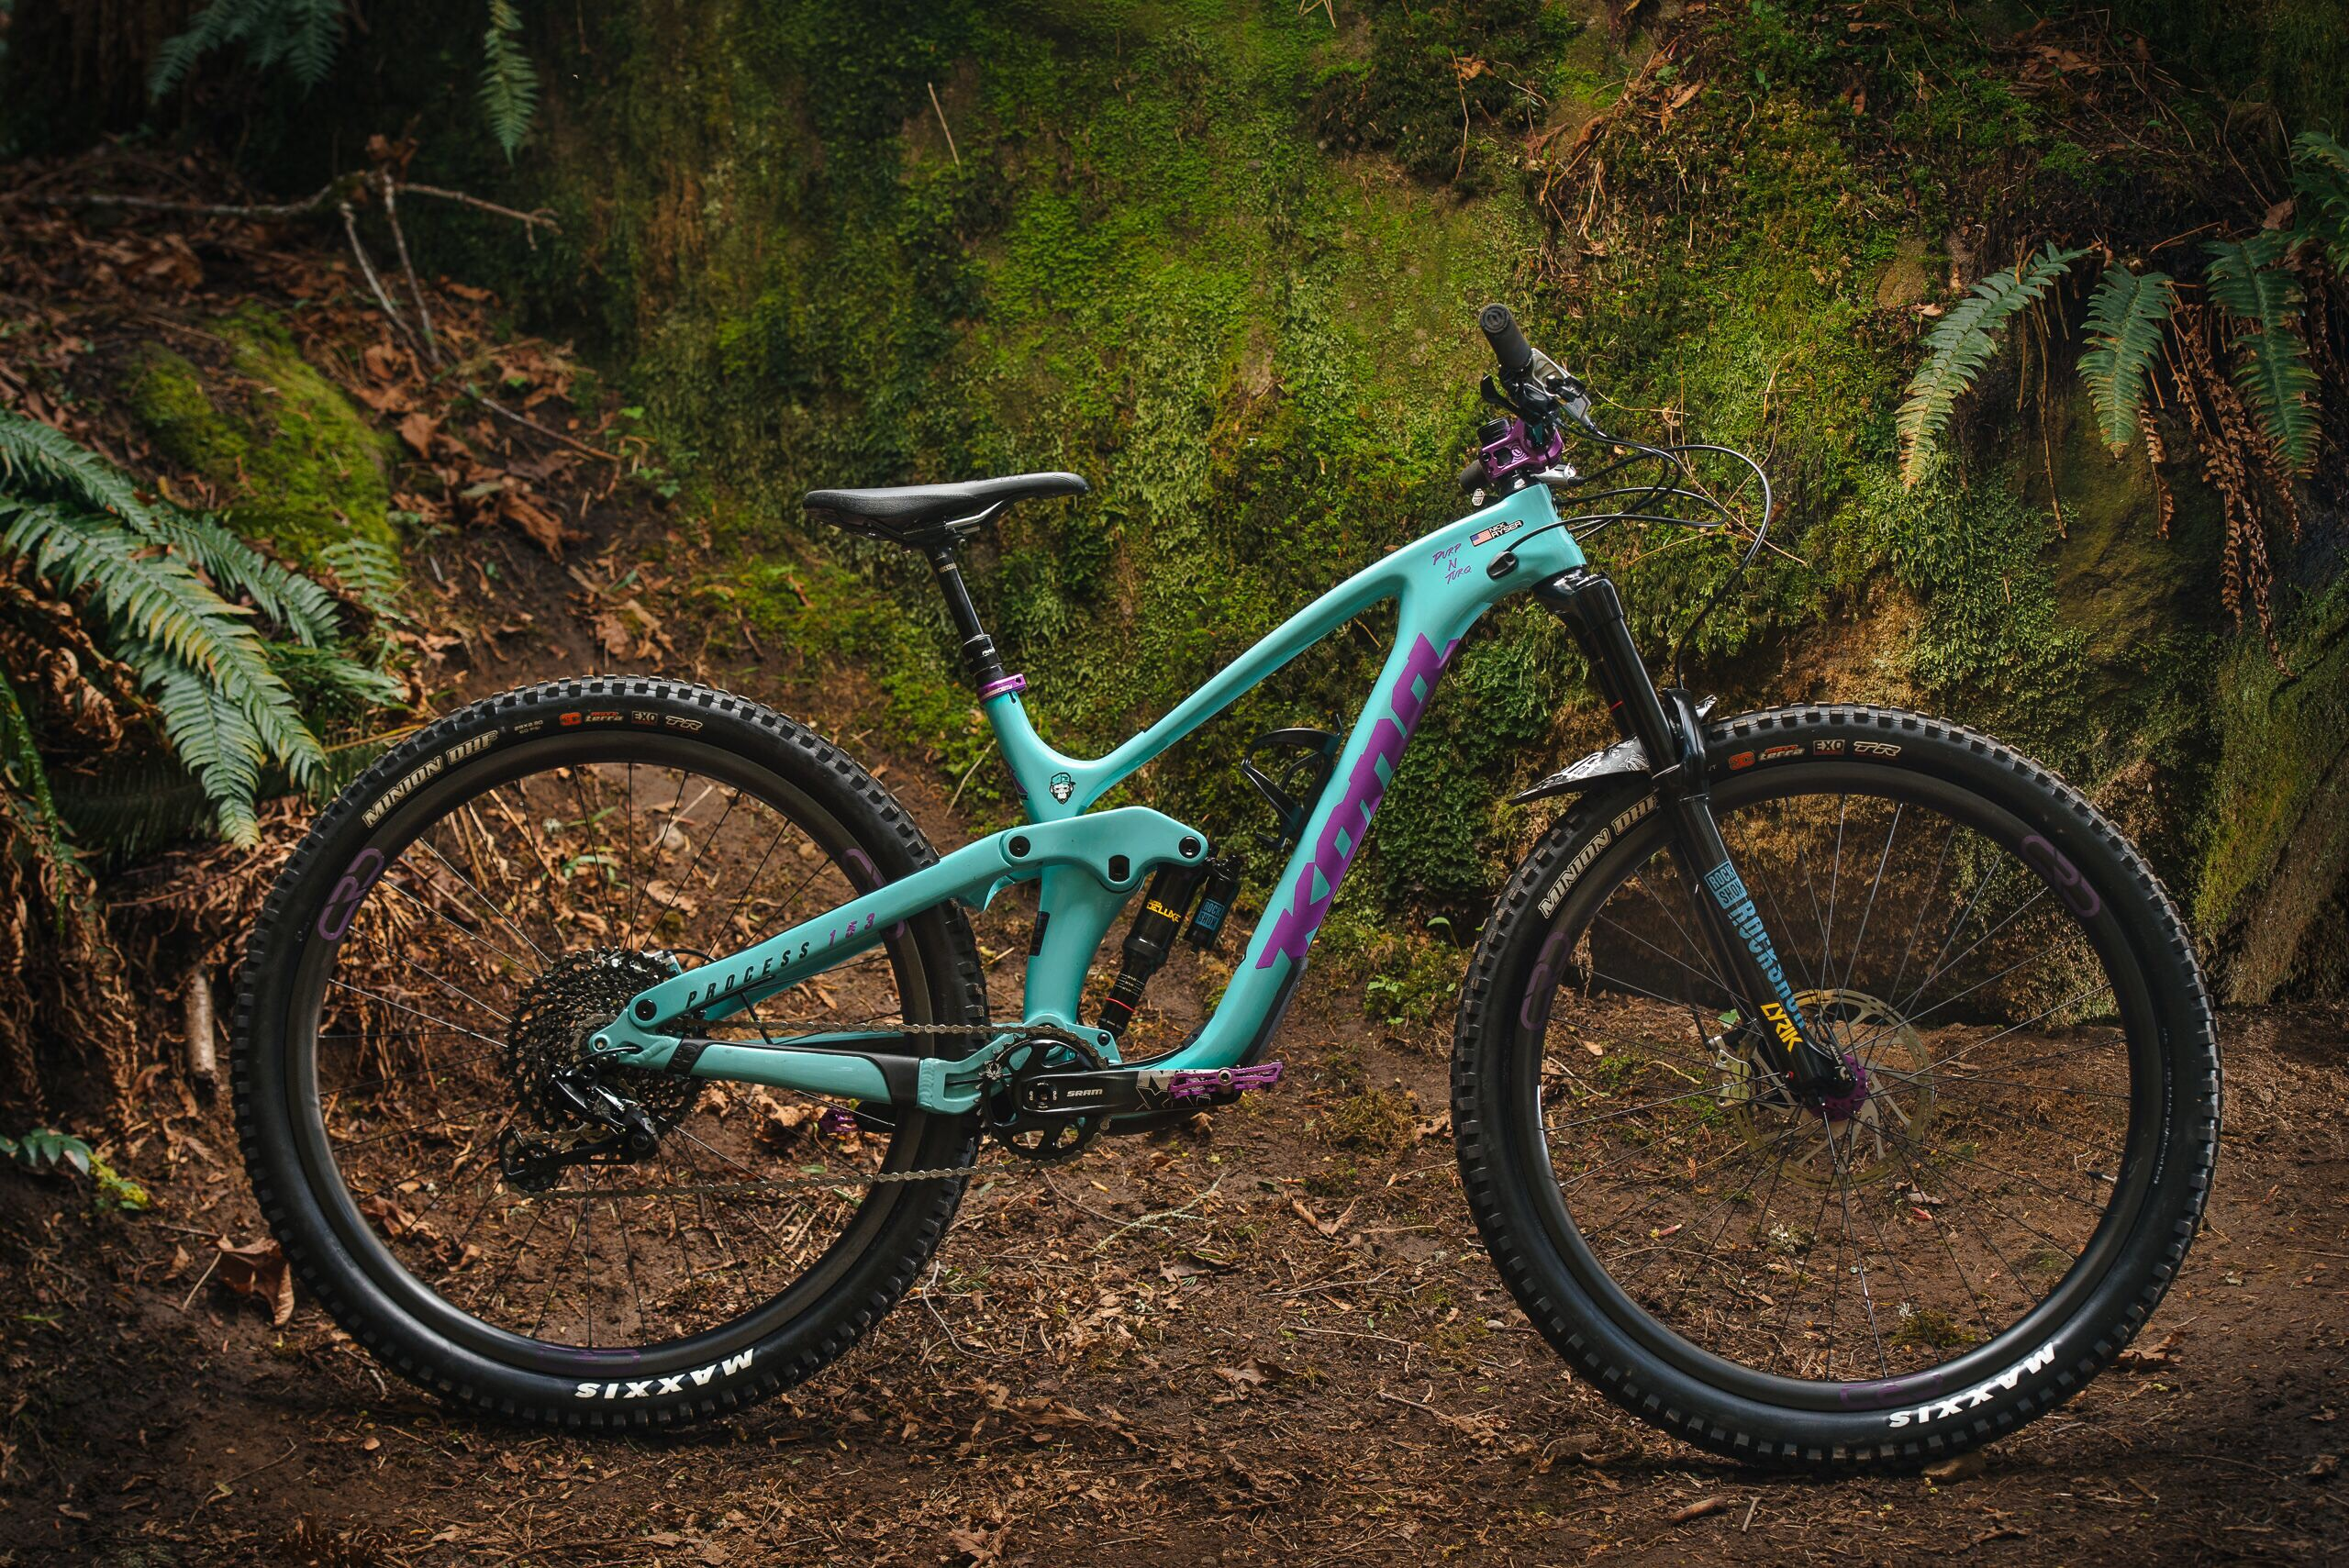 Kona Dream Builds: Purp 'n' Turq – Nick's Custom Process CR